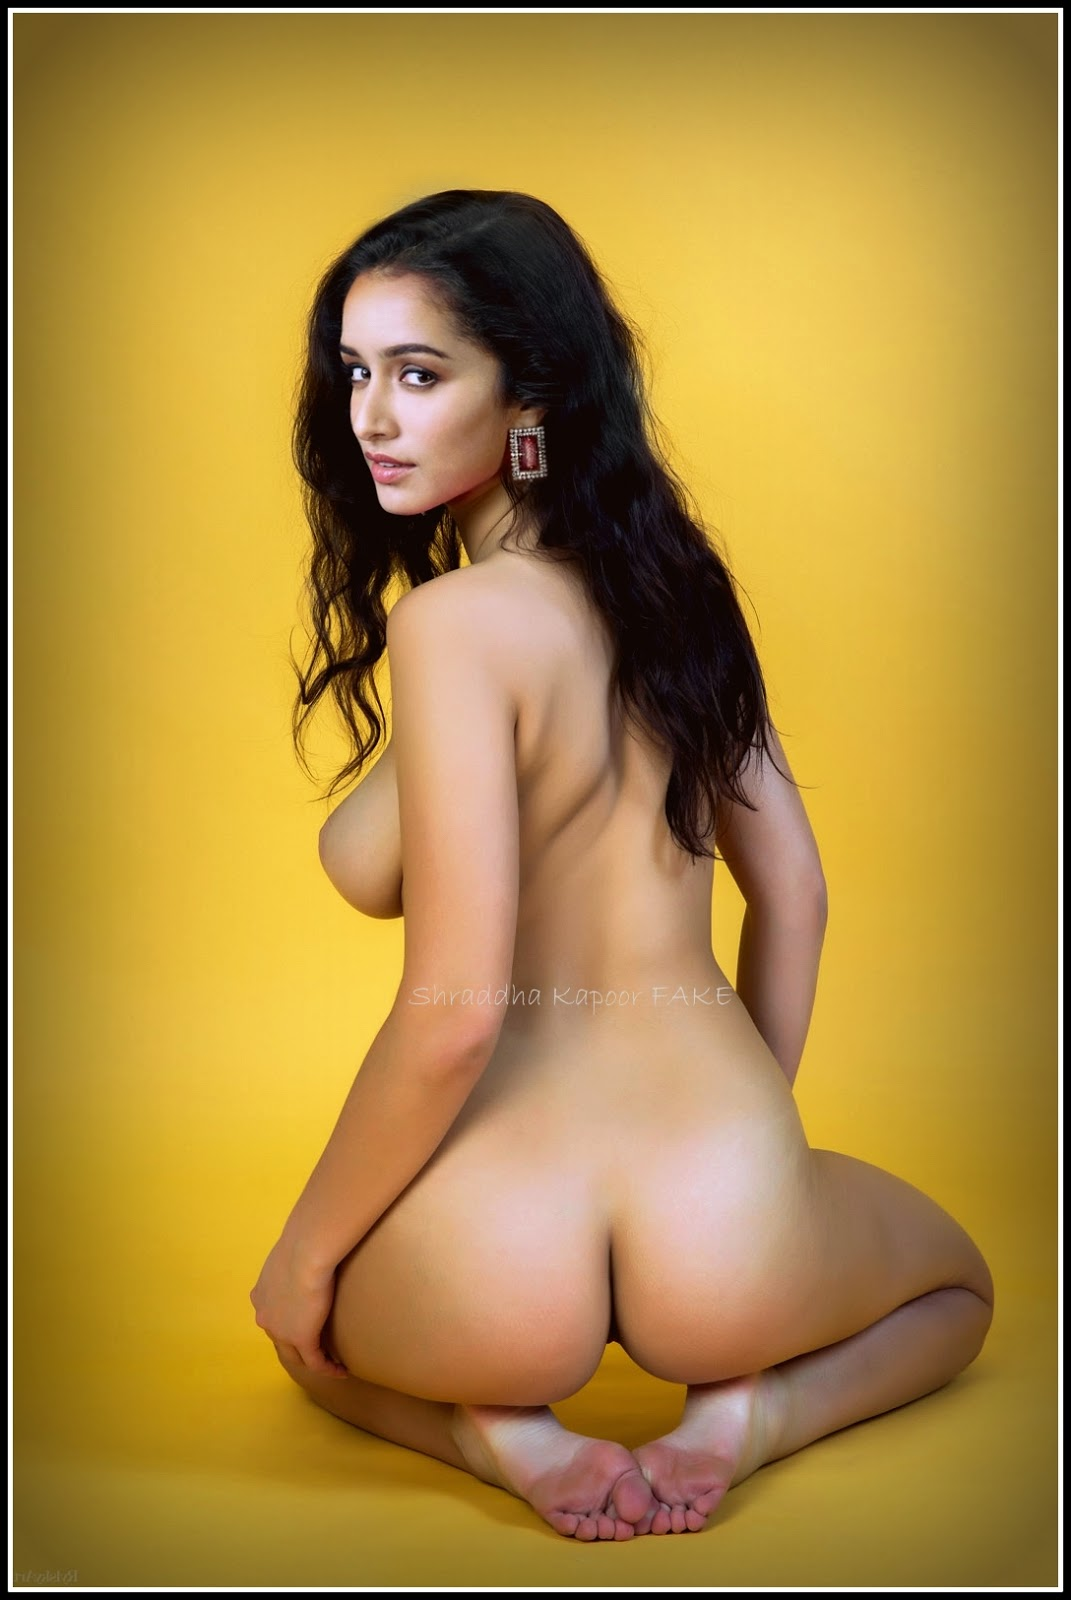 Precisely does tamil full nude hot movies